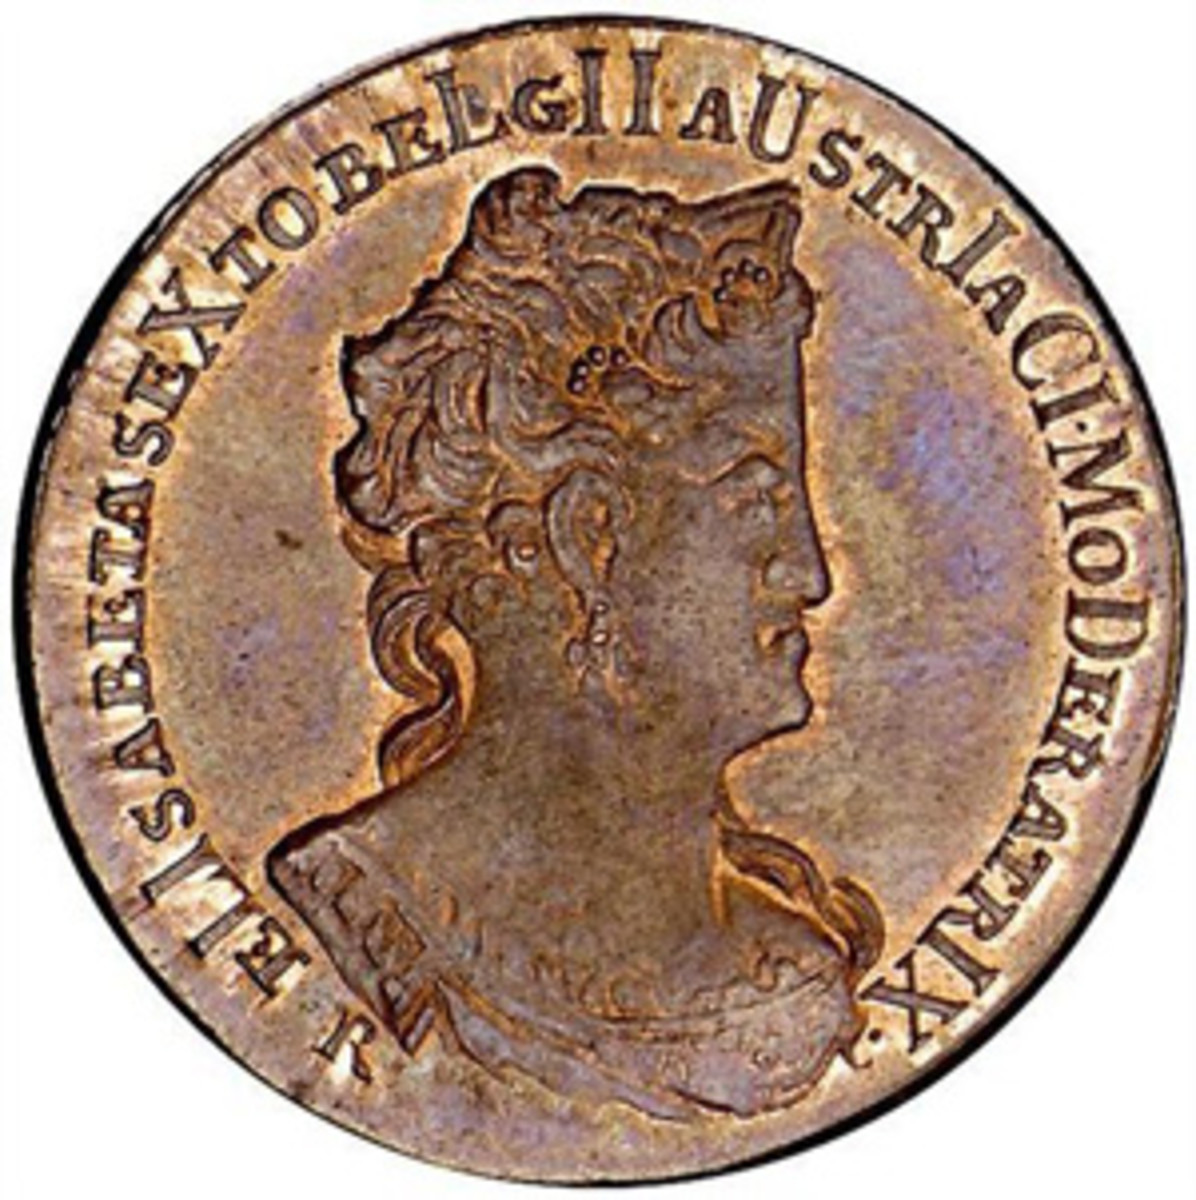 Chronogram date of MDDCLLXXVIIIIII, or 1731, is worked into the obverse legend of this Austrian Netherlands' jeton. (Image courtesy Stack's Bowers)